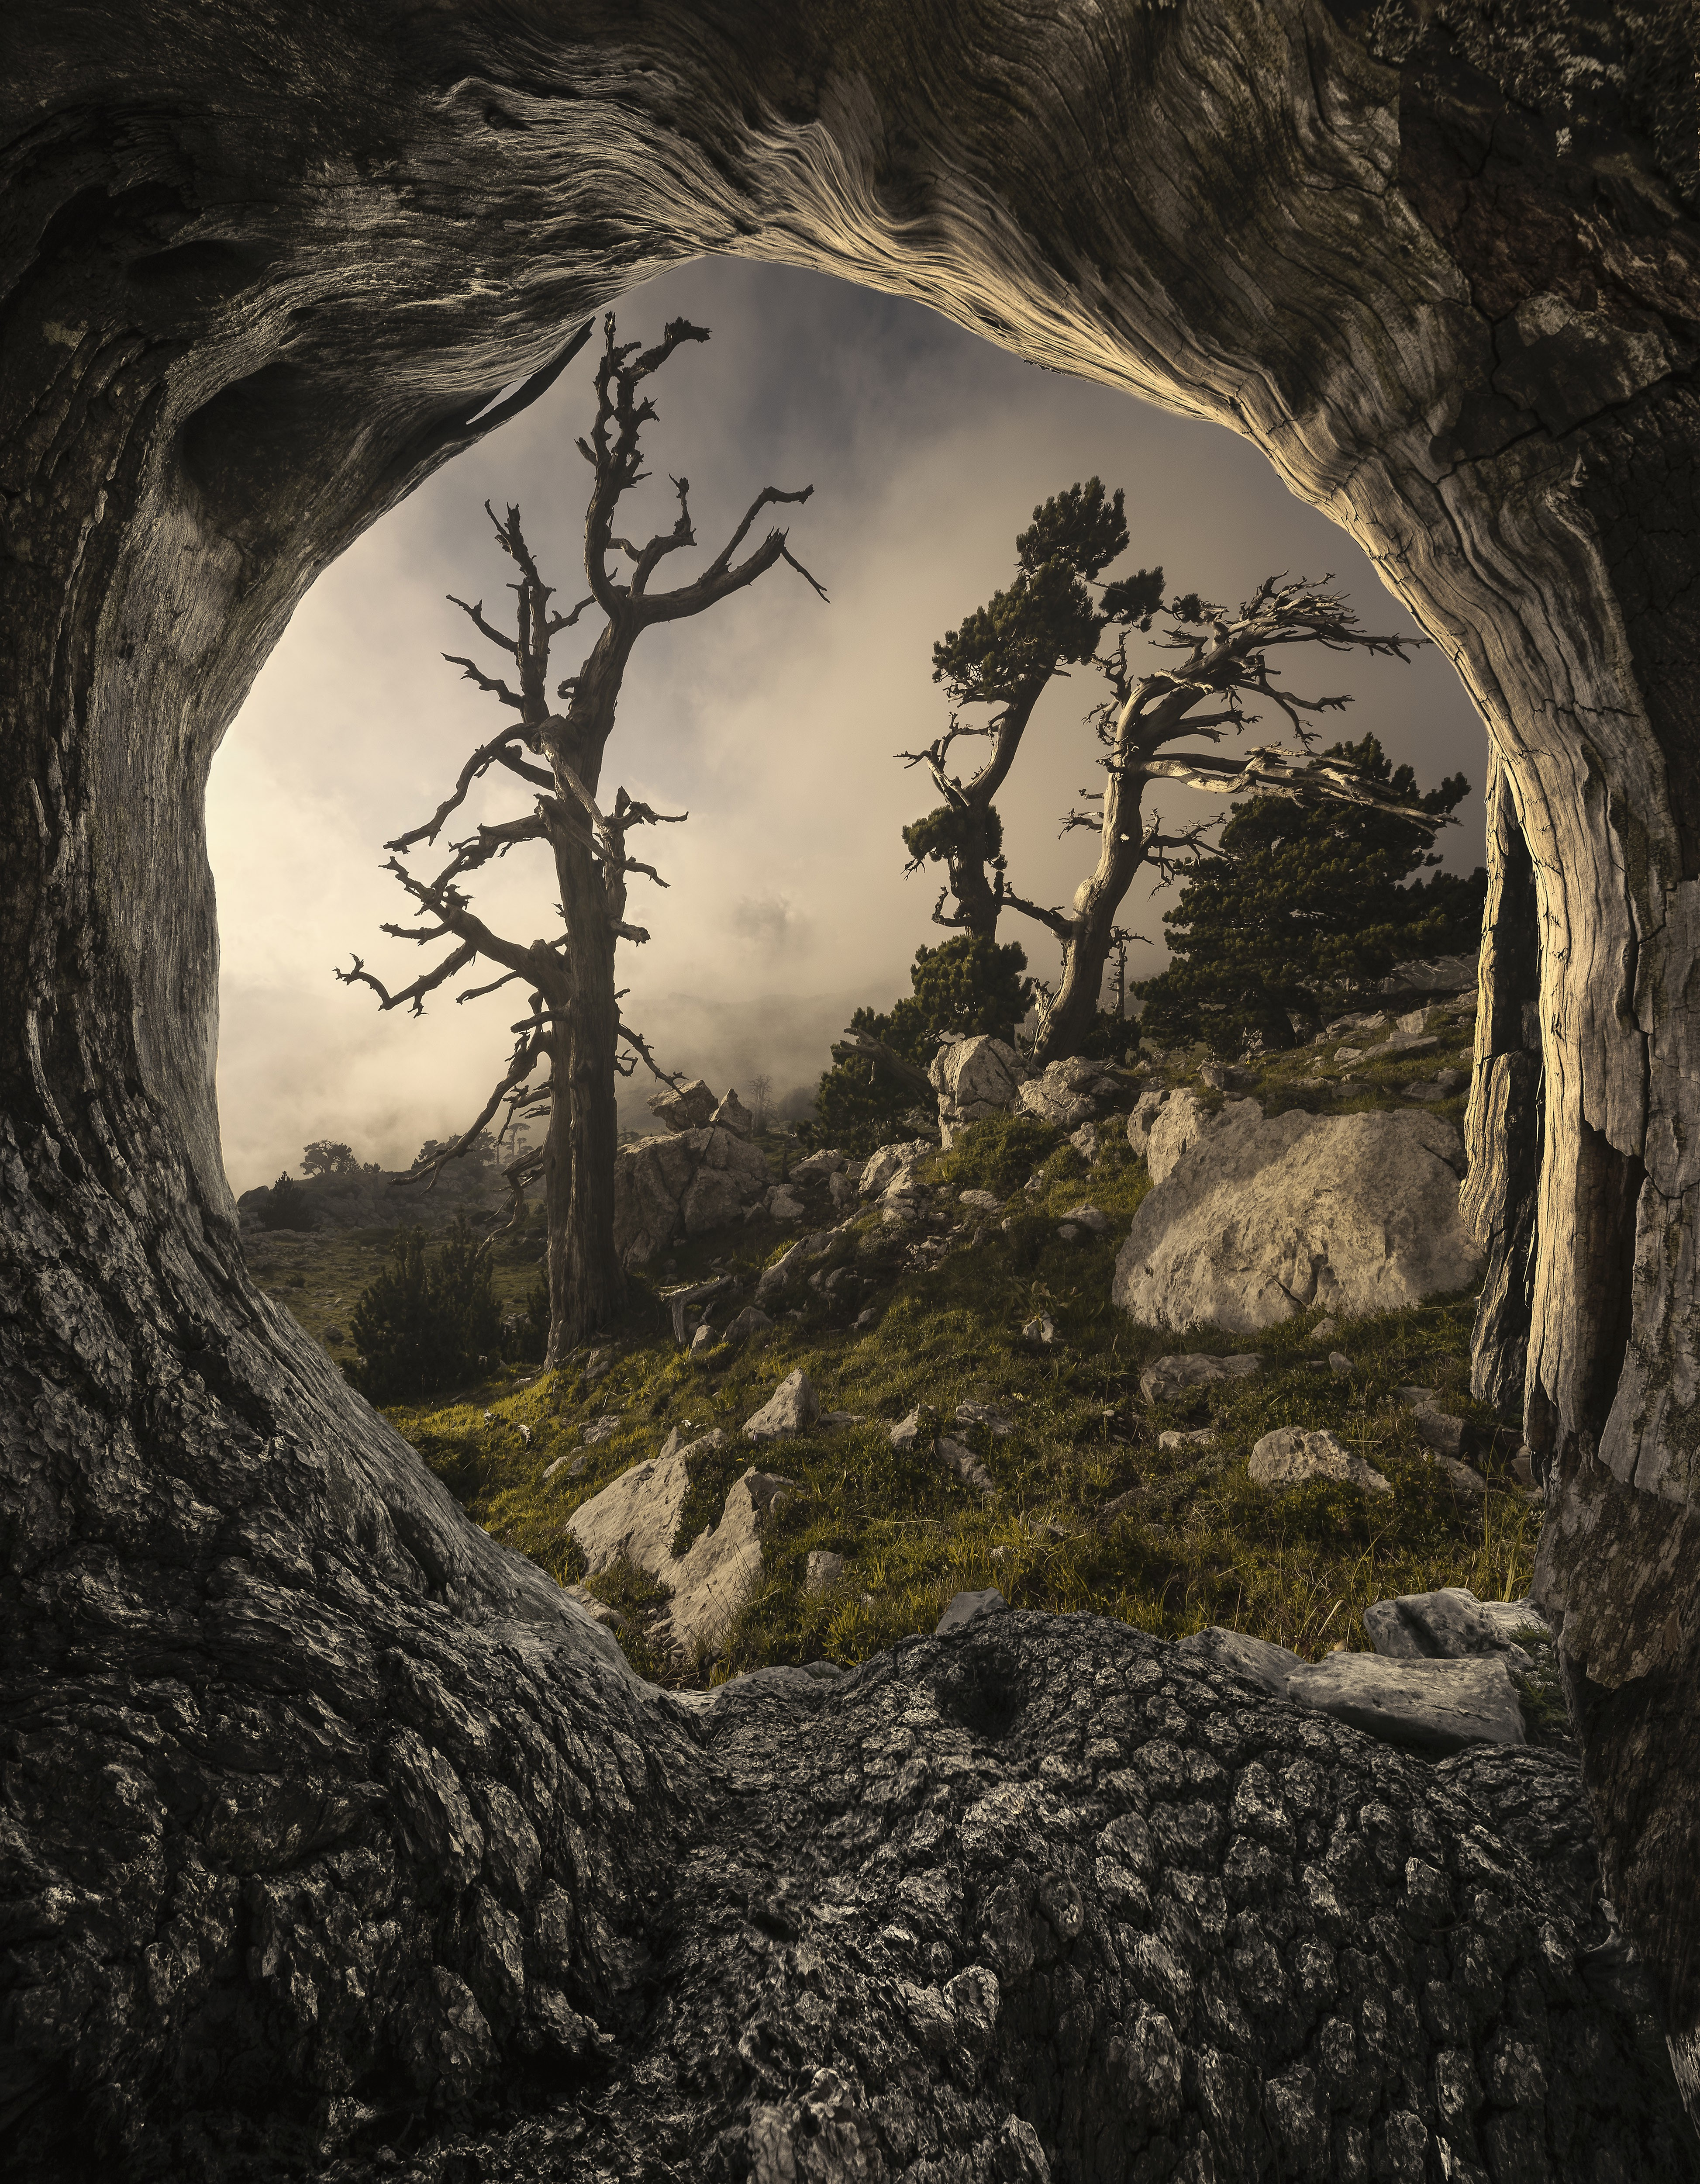 The camera looks out from a cave and out at an almost prehistoric looking world including mossy rocks and bare trees